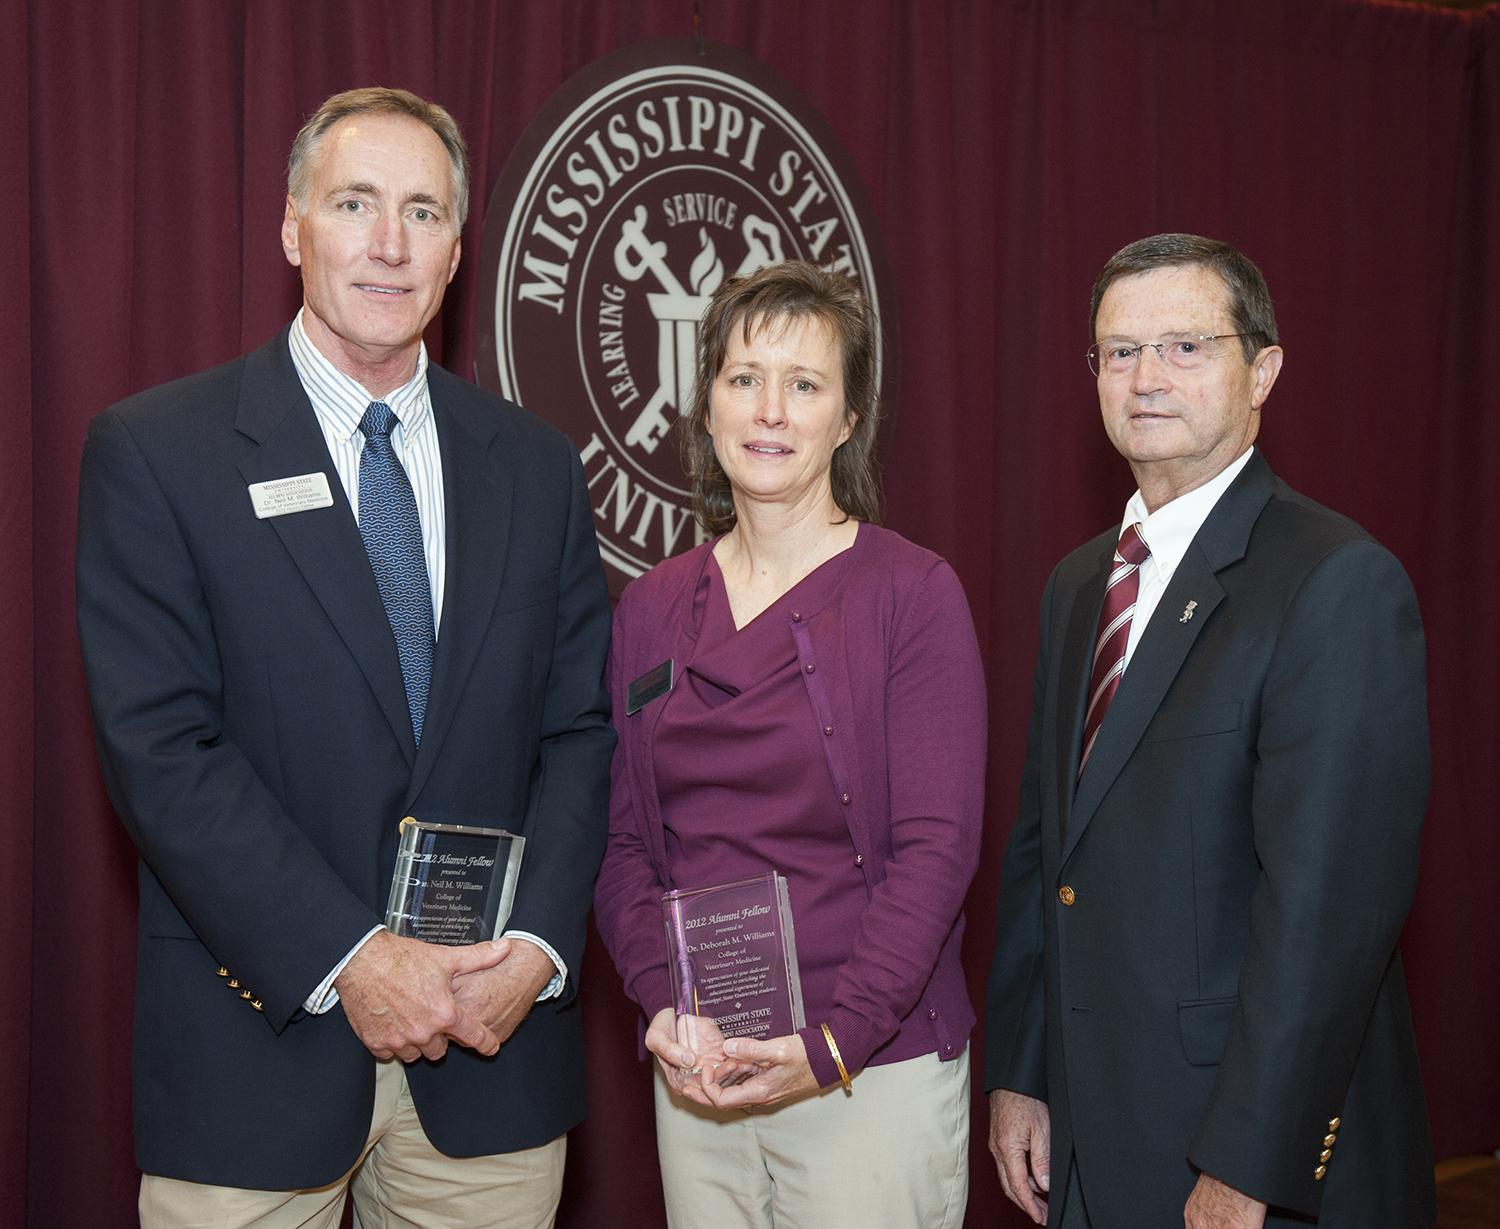 Dr. Neil M. Williams, left, and his wife Dr. Deborah Maples Williams, with Kent Hoblet, dean of the MSU College of Veterinary Me